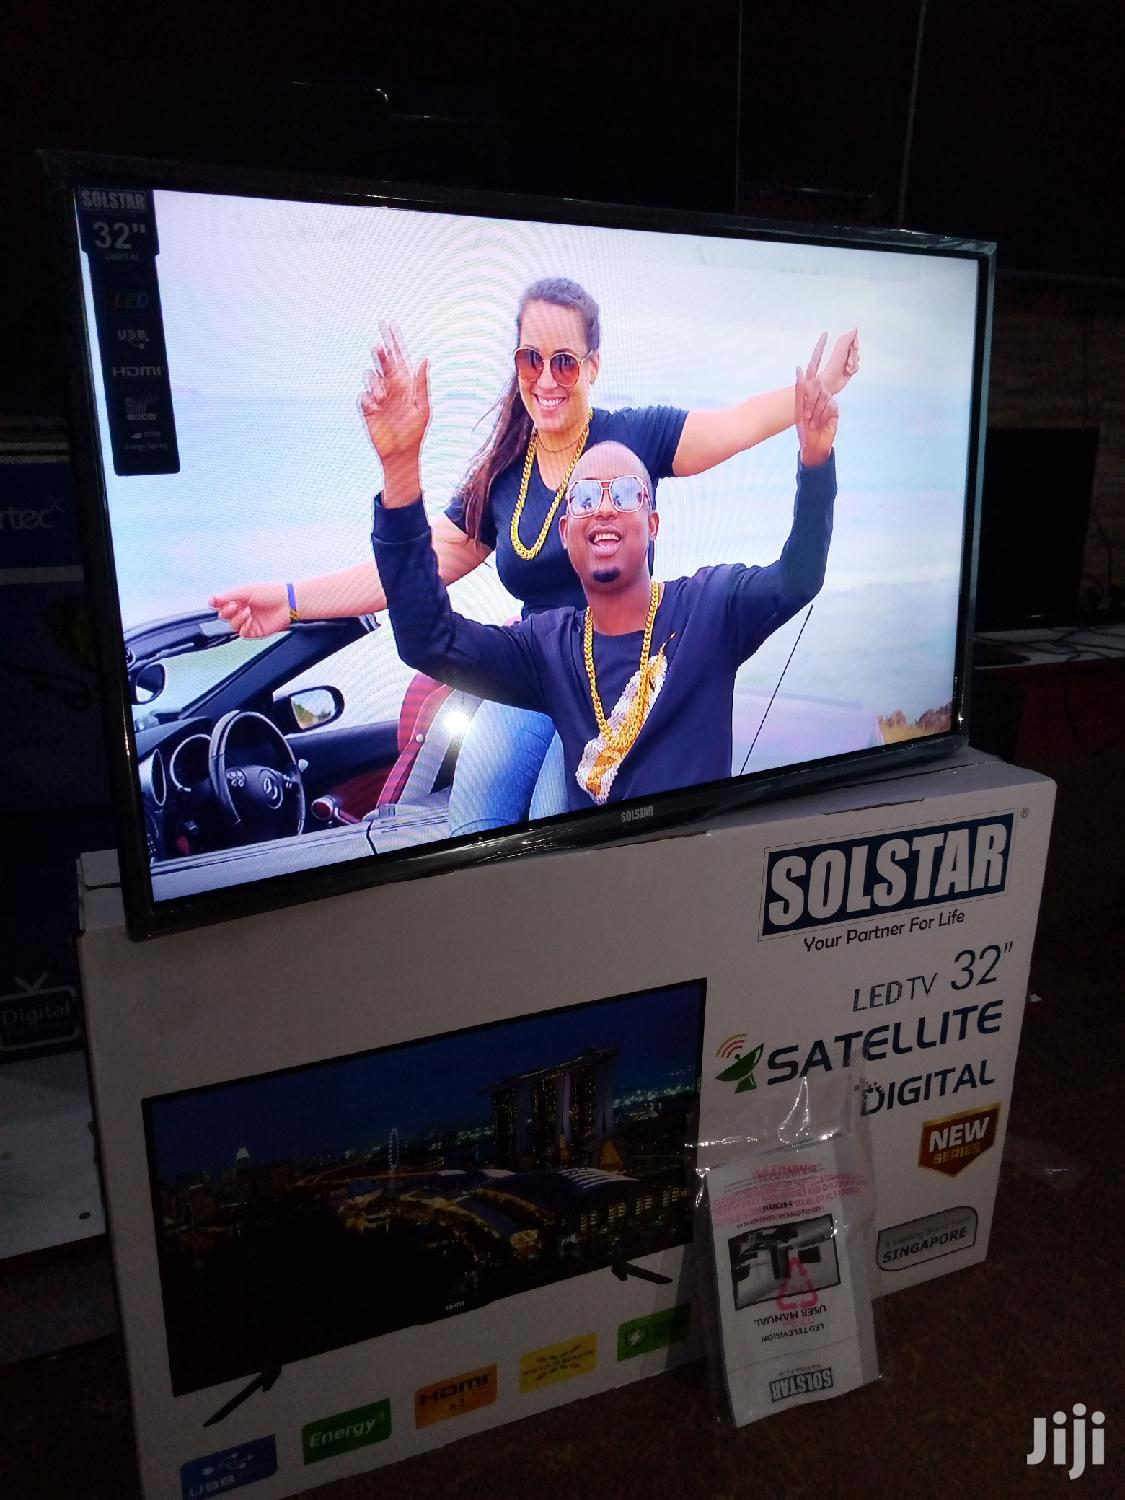 Solstar LED Digital Satellite Flat Screen TV 32 Inches